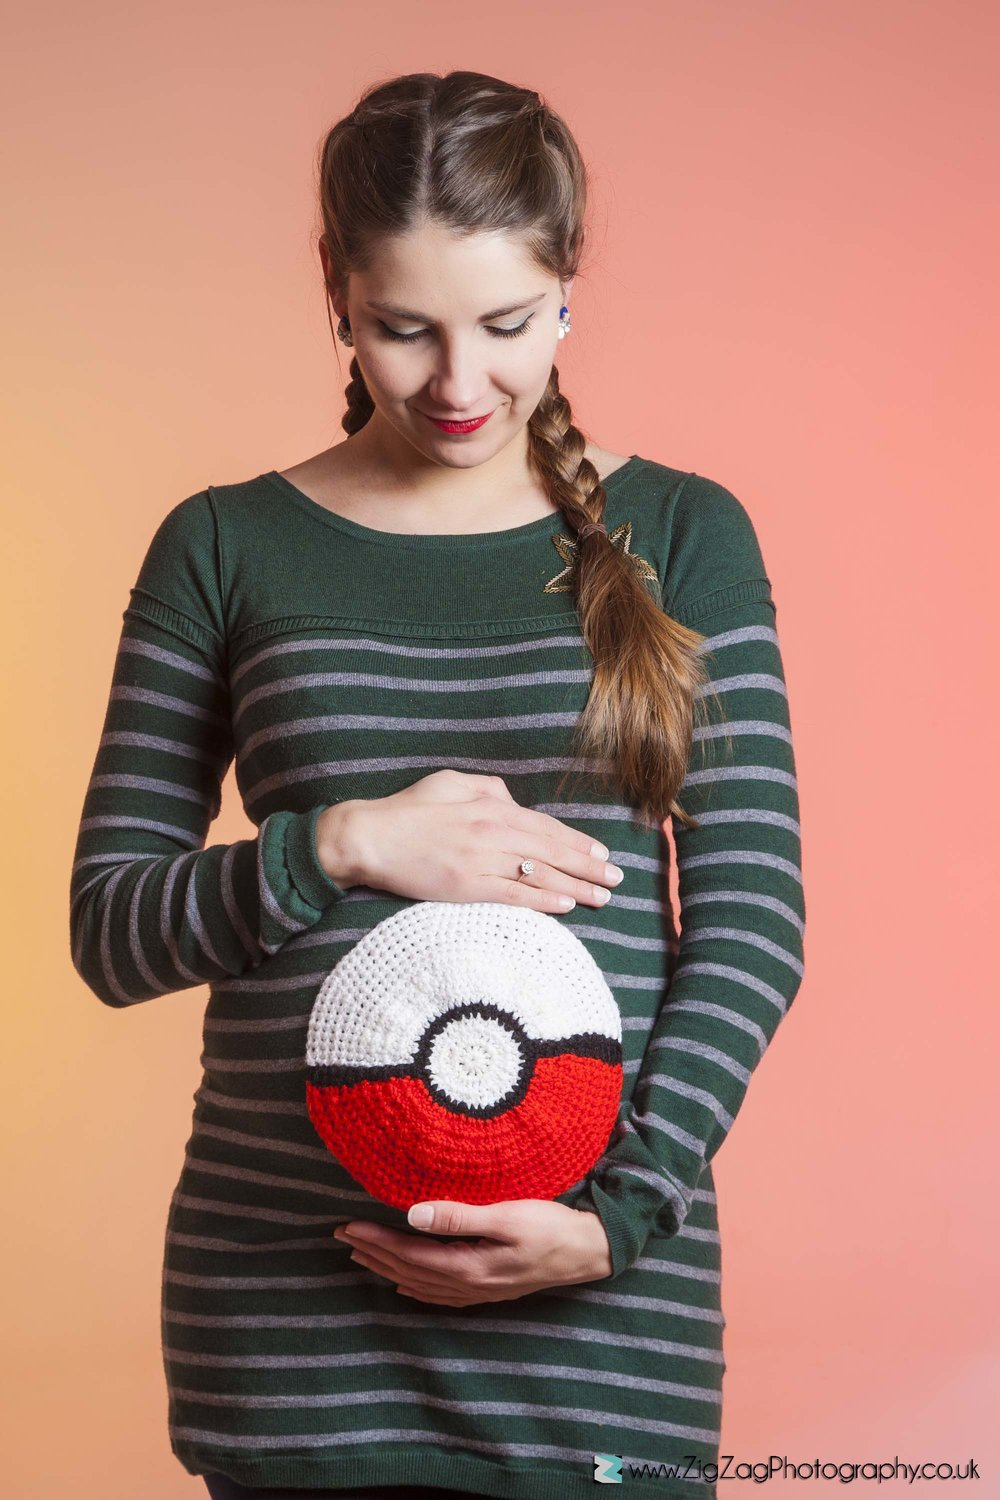 photoshoot-pregnancy-bump-pokemon-orange.jpg